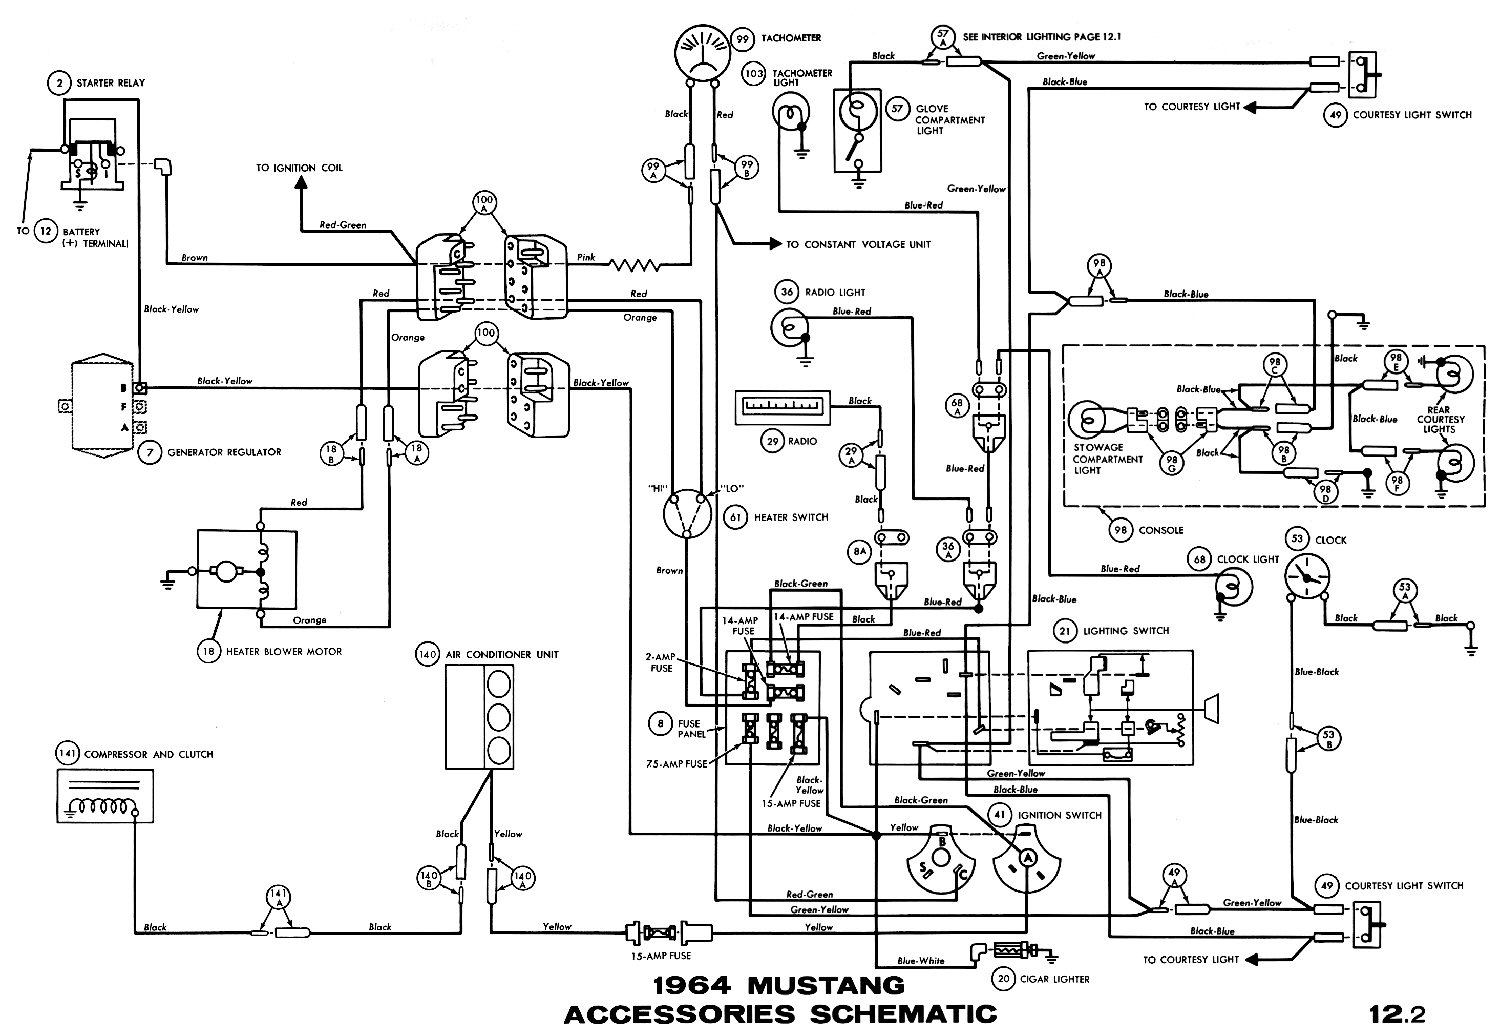 06 mustang horn wiring diagram wiring database library06 mustang horn wiring diagram simple wiring post 69 mustang wiring diagram 06 mustang horn wiring diagram